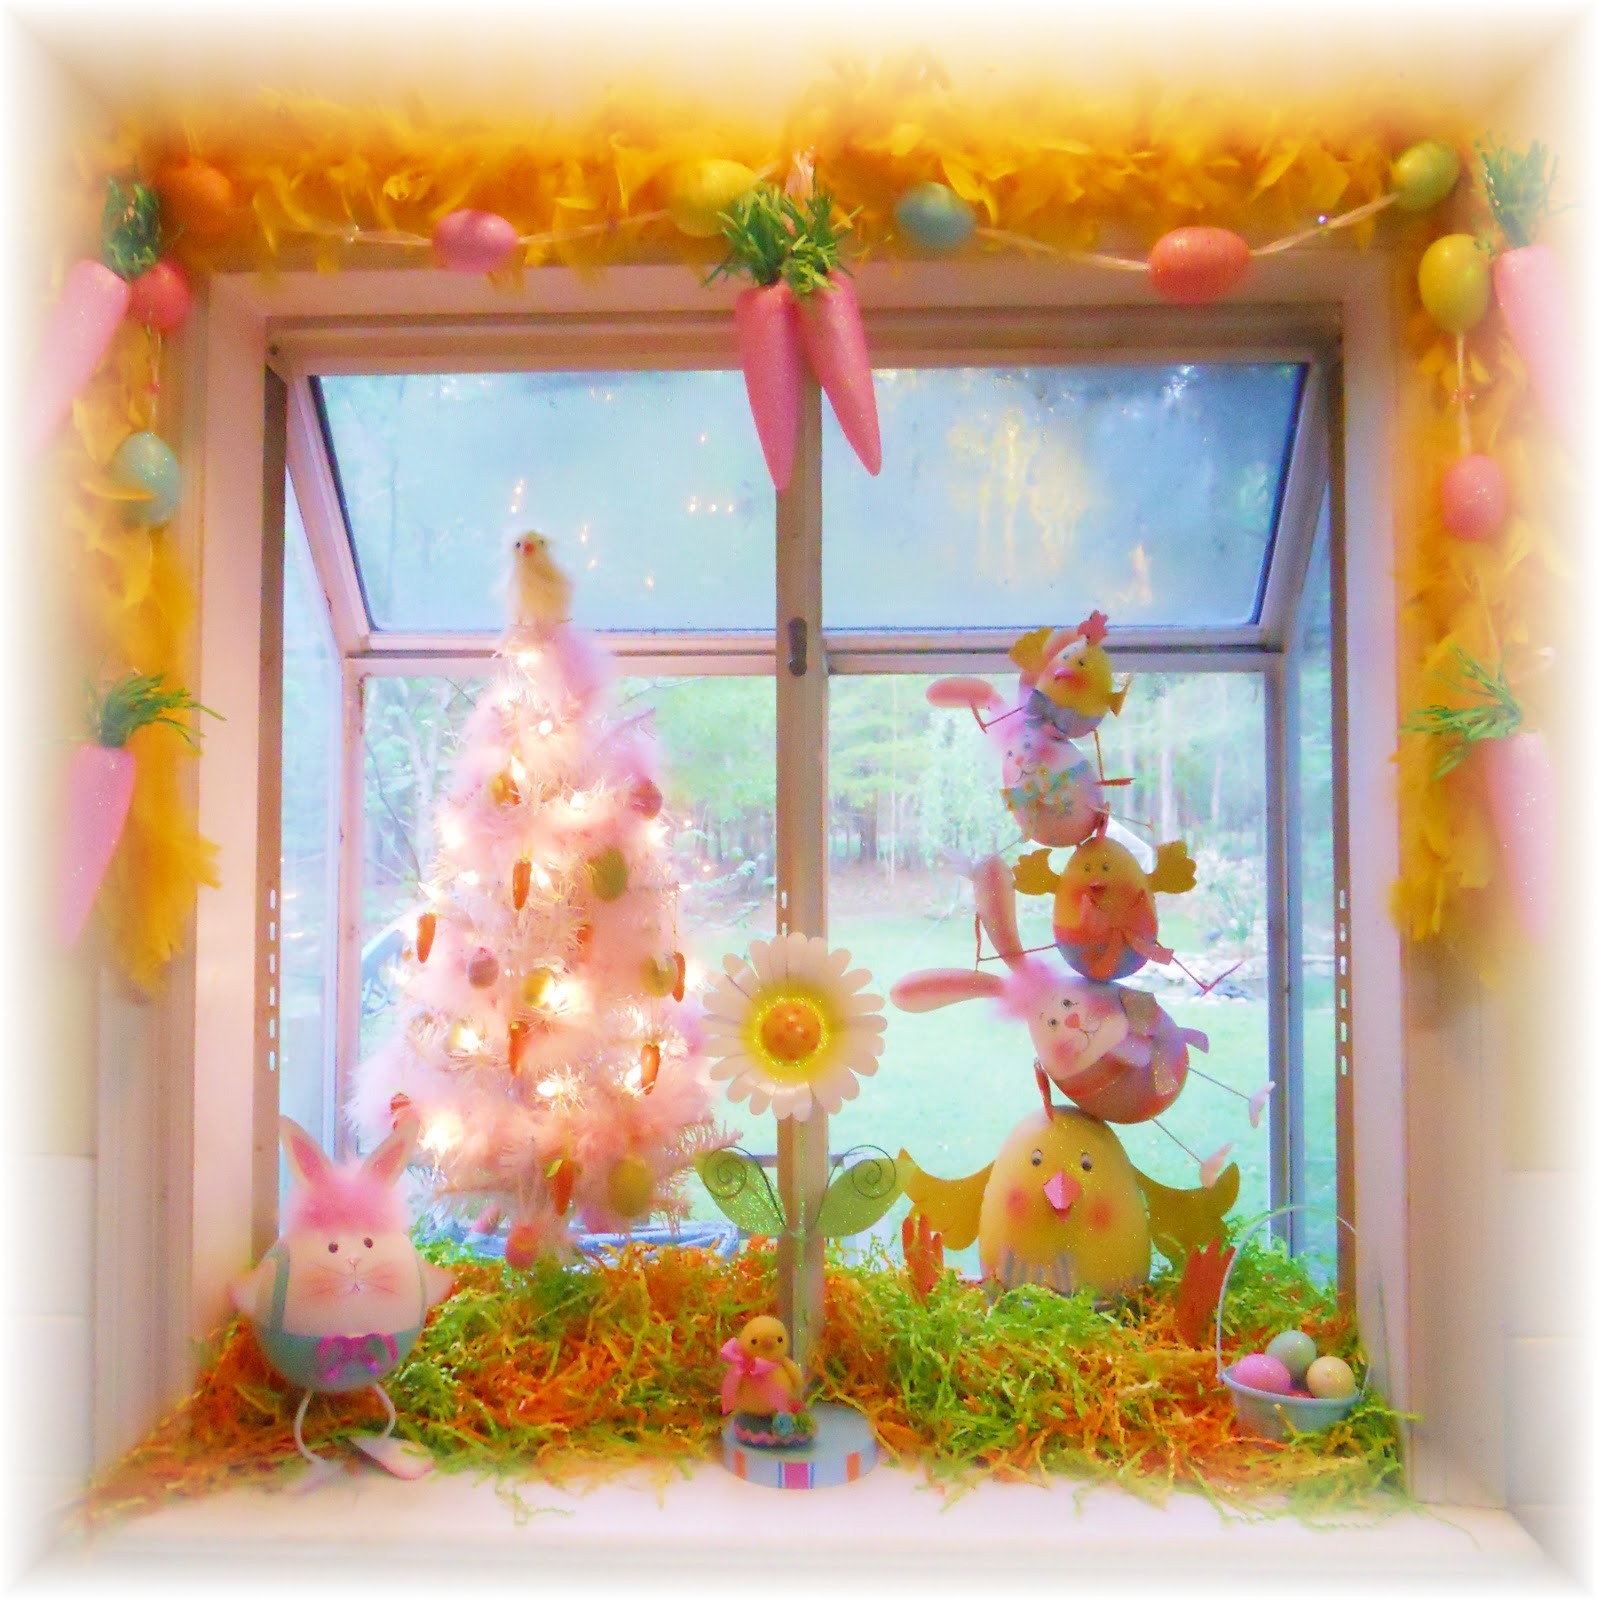 Kitchen Window Display: Bubbles Of Joy: Kitchen Window Easter Display